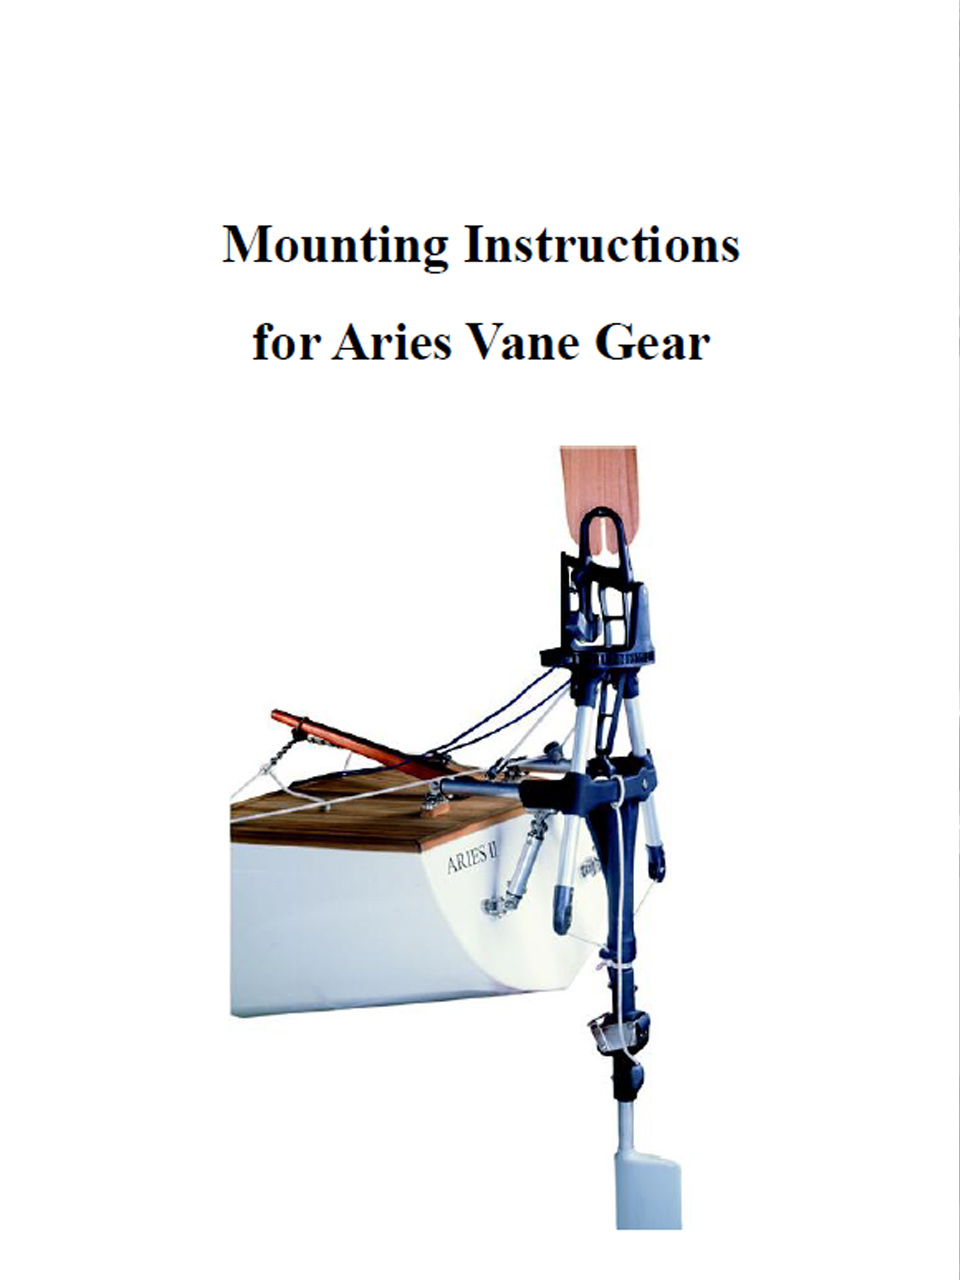 Aries Mounting Instructions